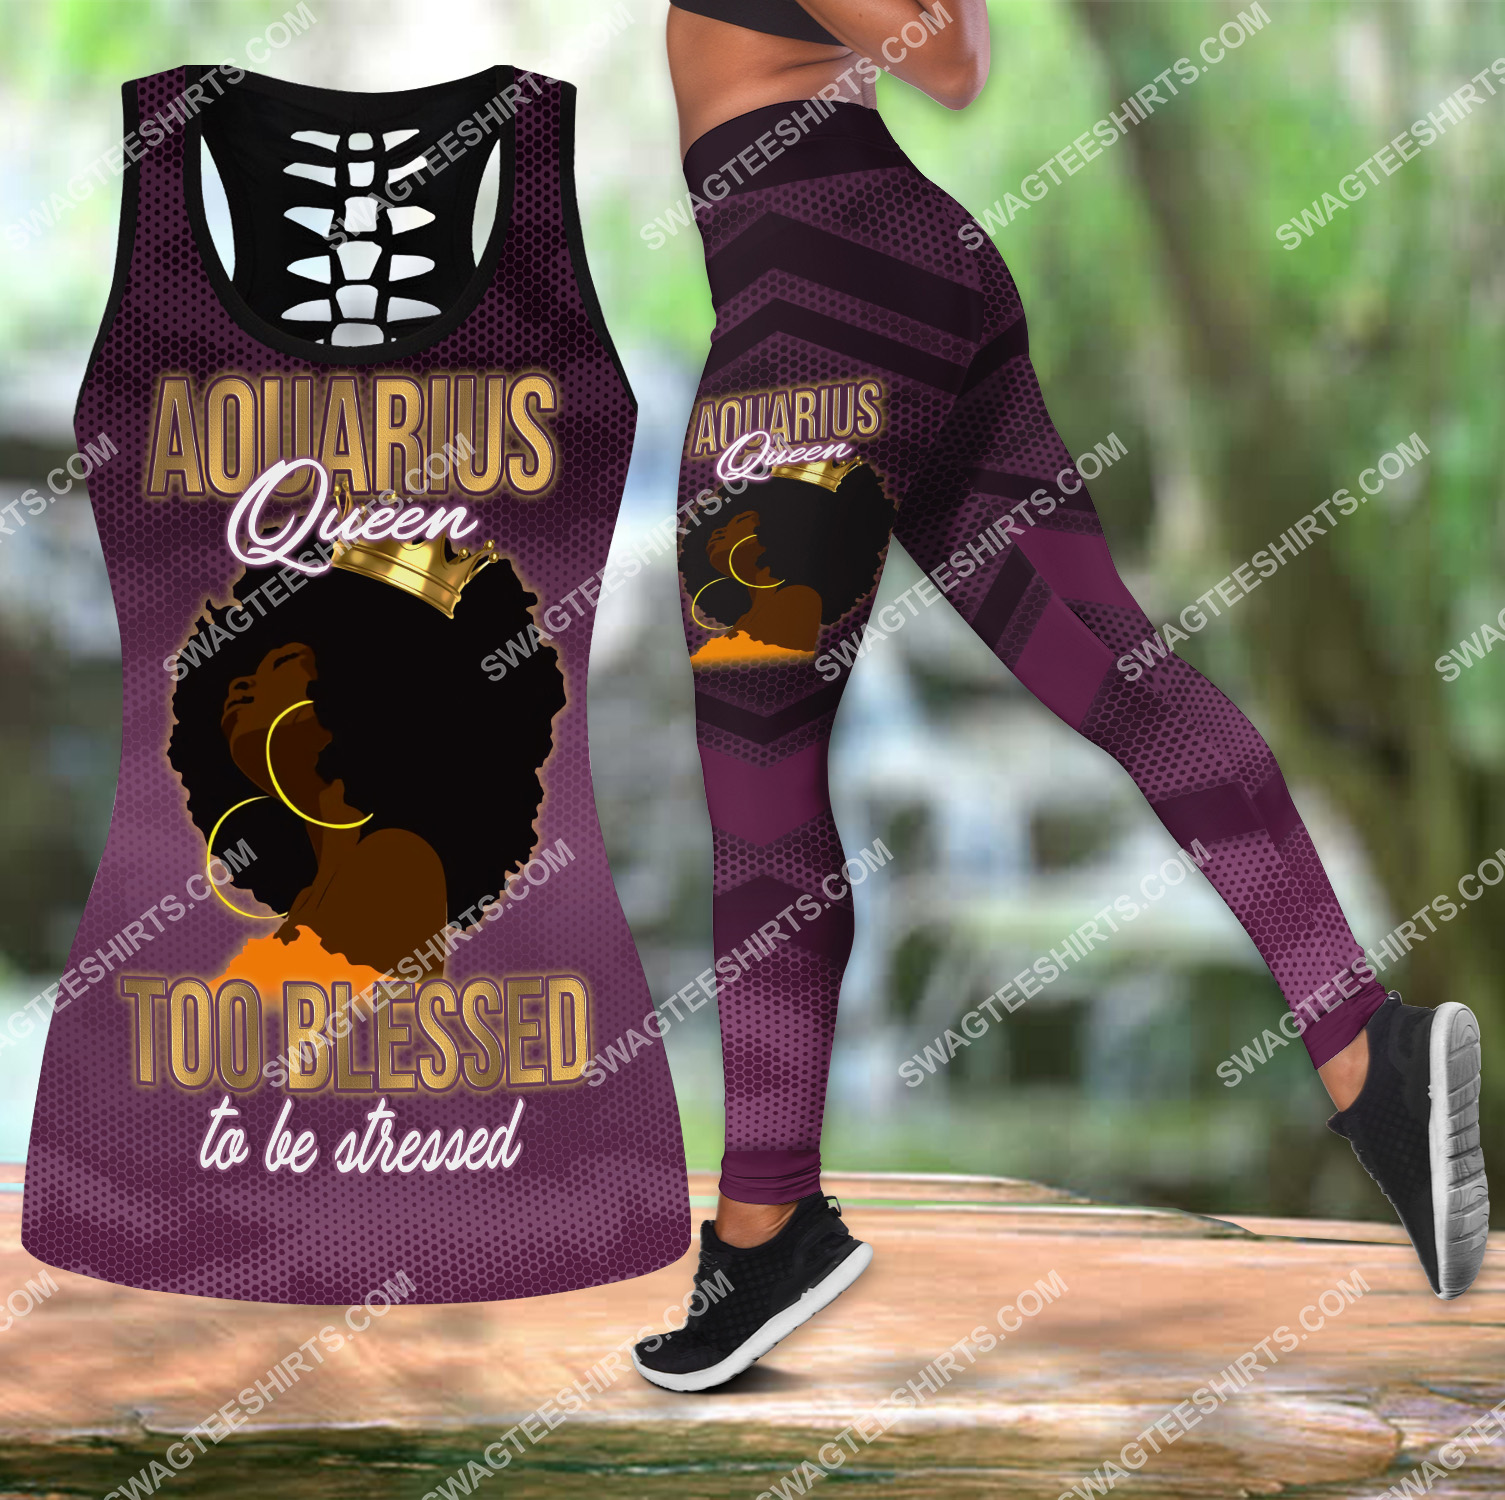 aquarius queen too blessed to be stressed birthday gift set sports outfit 3(1)